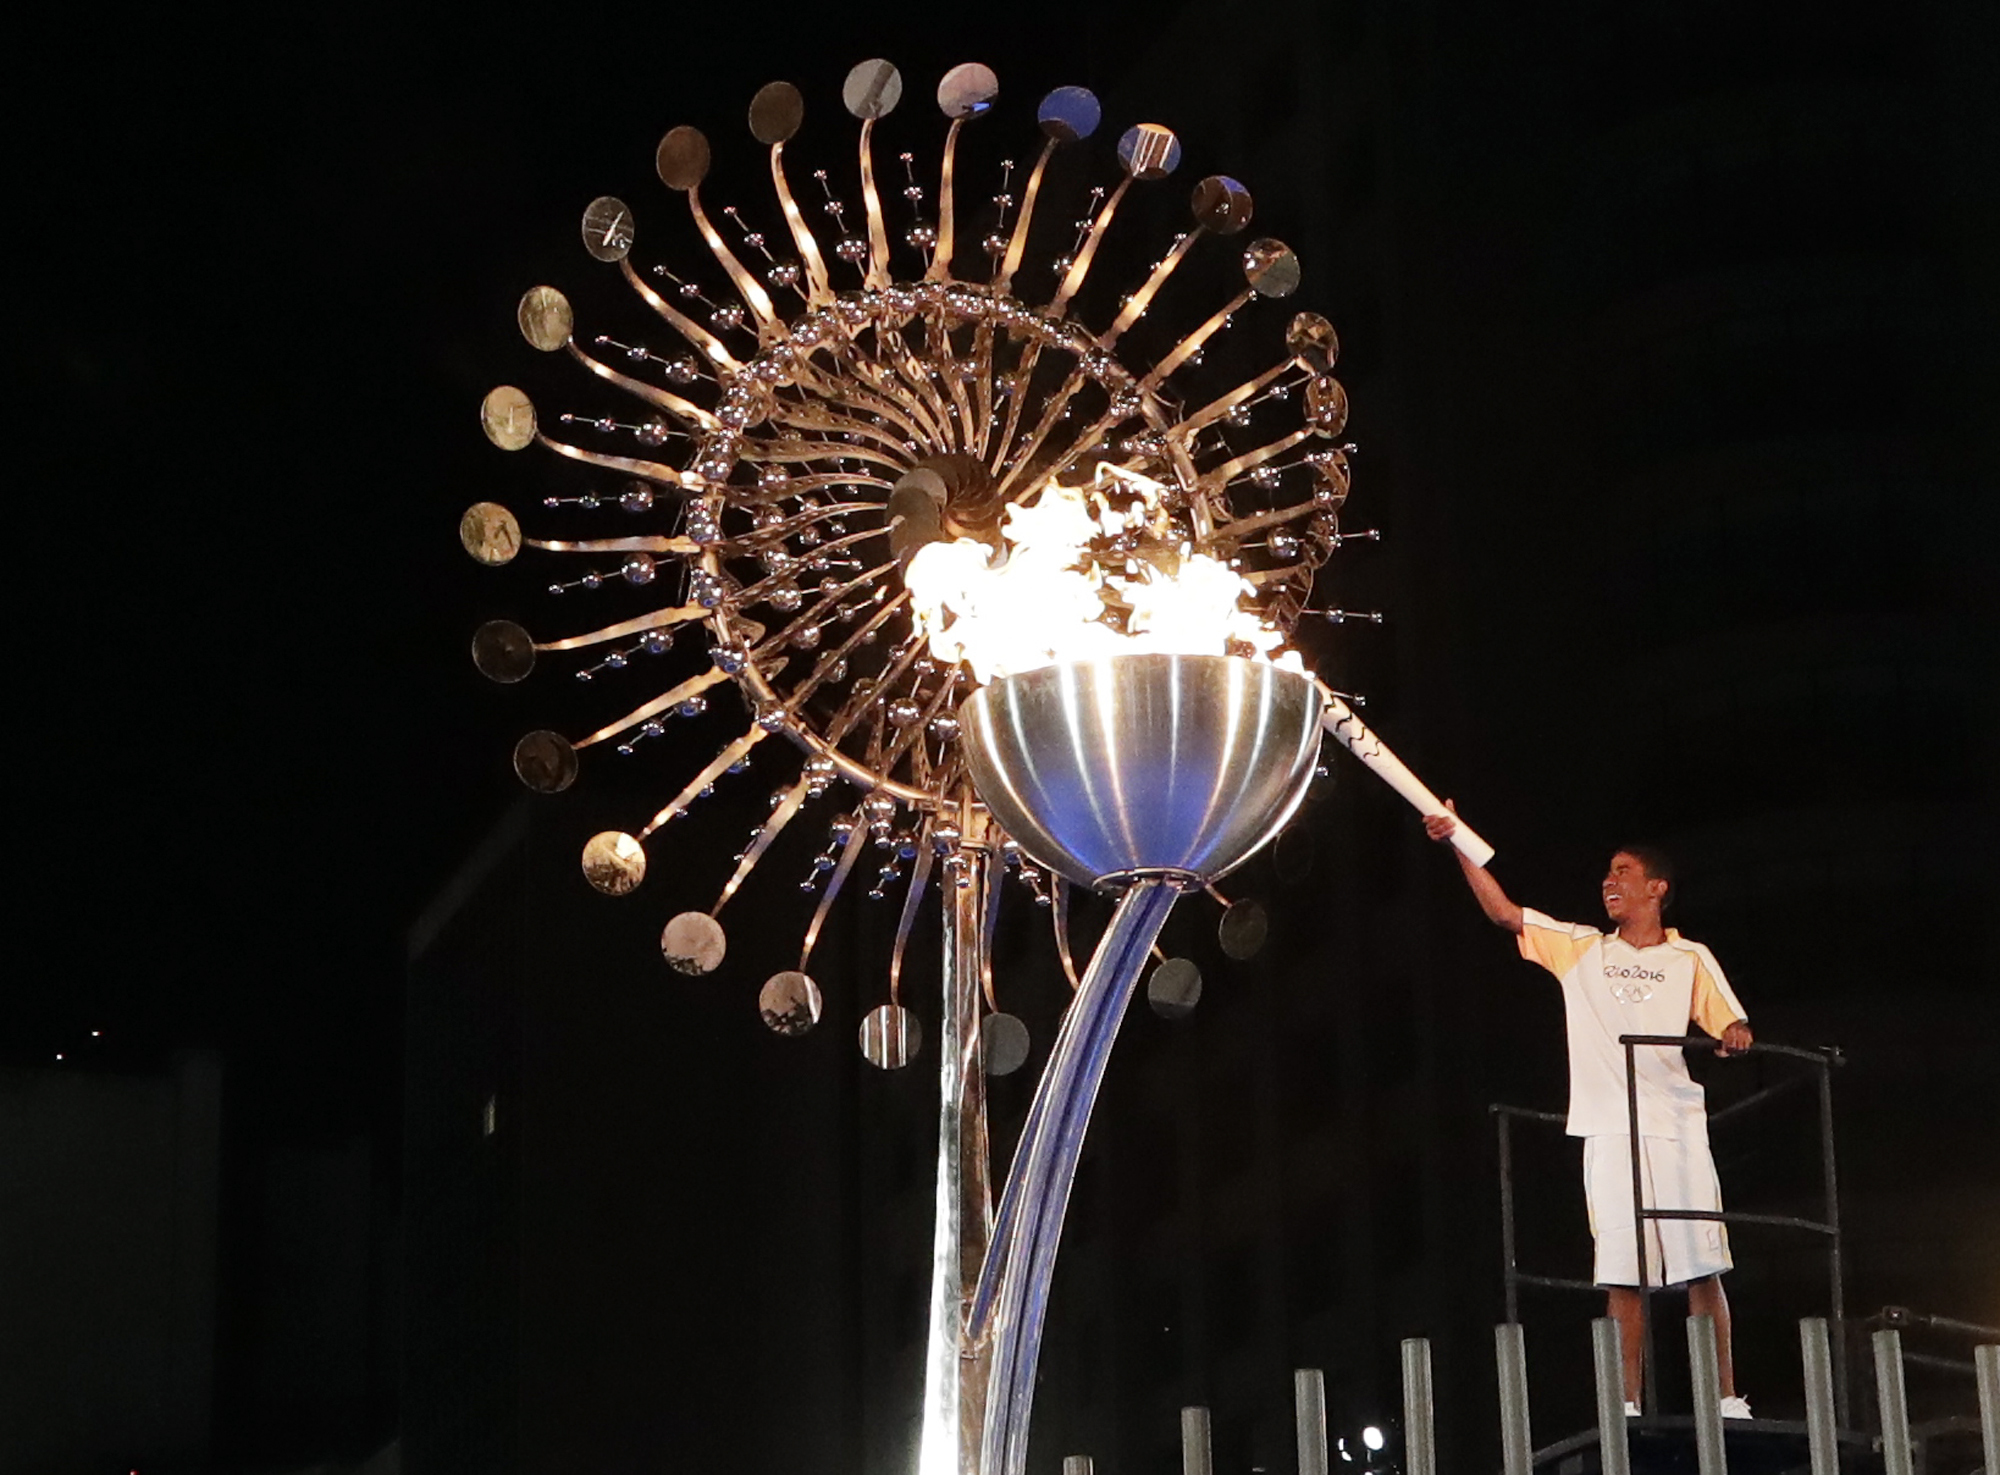 Jorge Alberto Oliveira Gomes lights the Olympic cauldron during the opening ceremony of the 2016 Summer Olympics in Rio de Janeiro, Brazil, Saturday, Aug. 6, 2016. (AP Photo/Gregory Bull)